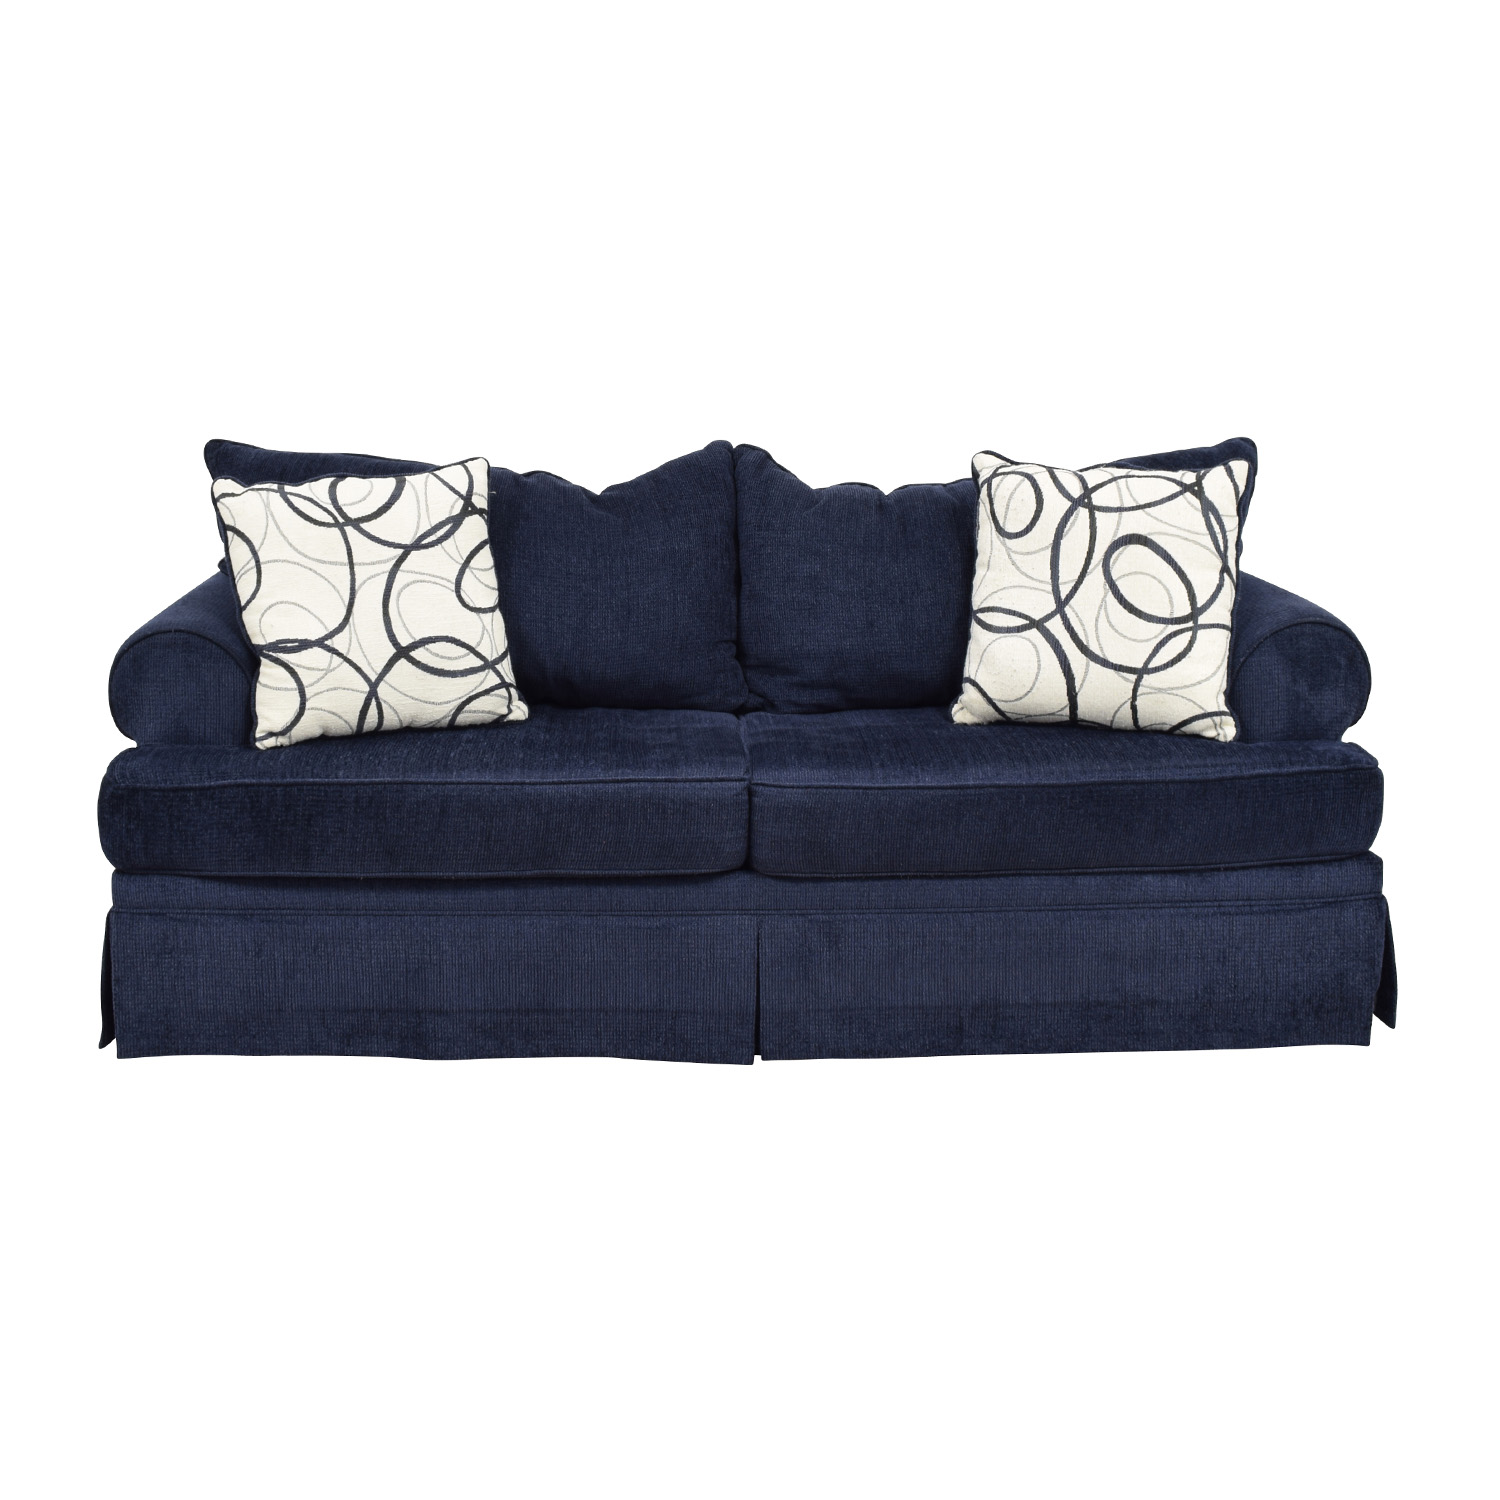 Bobs Furniture Deep Blue Sofa On